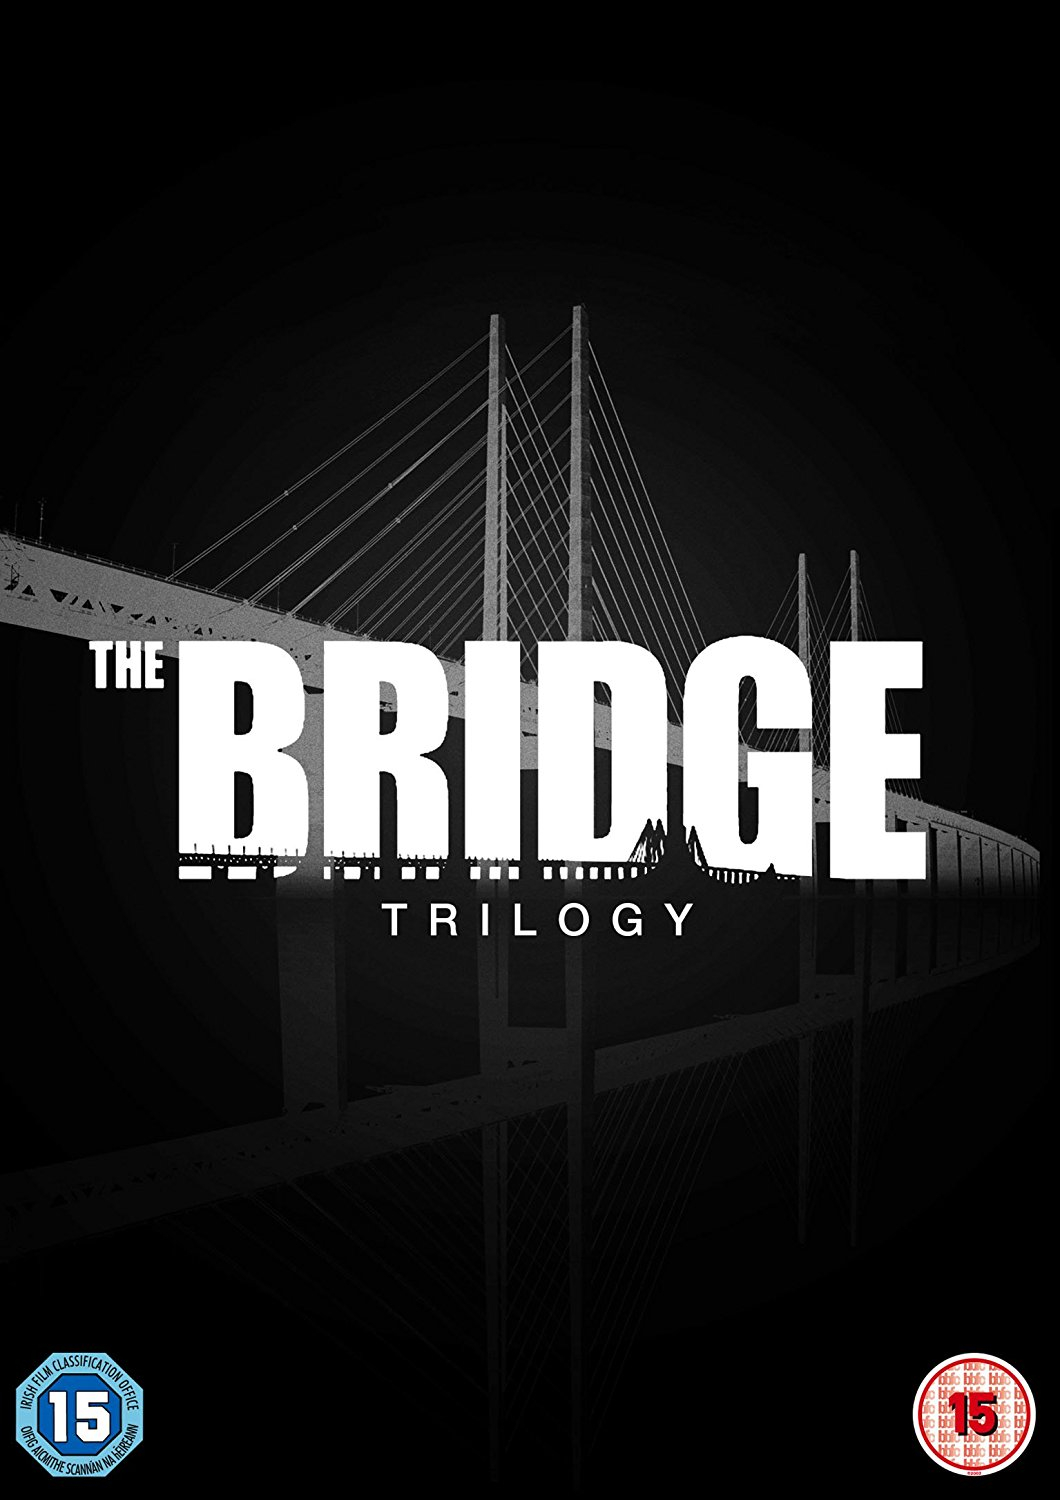 Buy The Bridge: Series 1-3 (Signed by Sofia Helin (Saga) & Thure Lindhardt (Henrik)